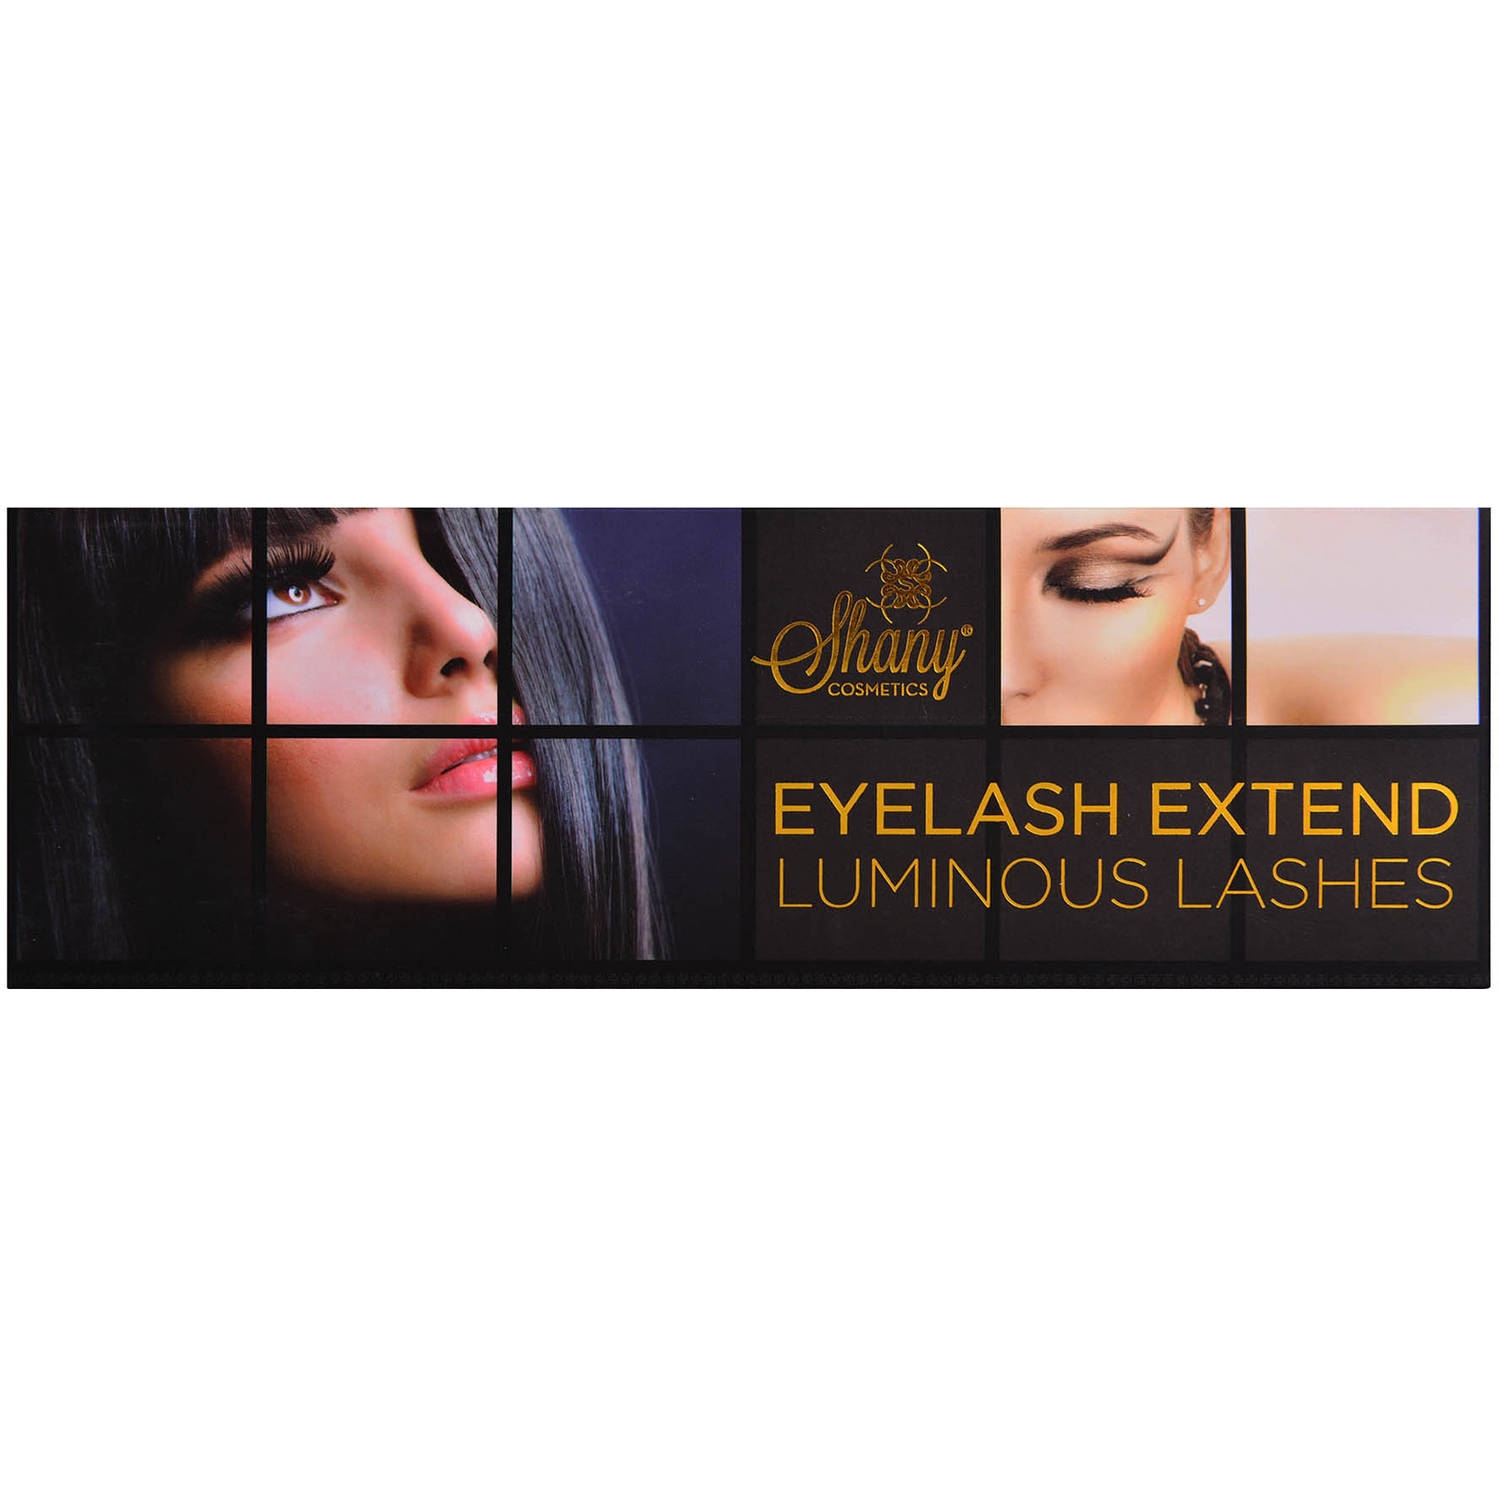 SHANY Eyelash Extend Eyelashes, 10 count